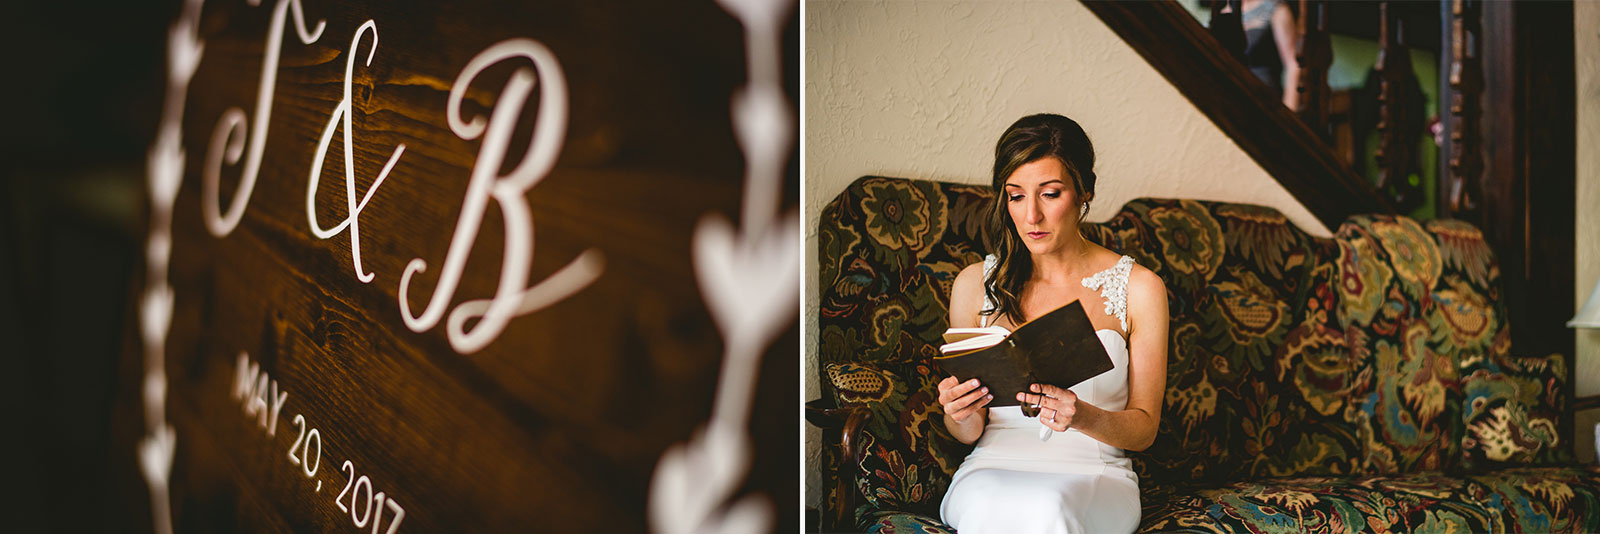 19 bride reading letter from groom - Club of Hillbrook Wedding // Jenna + Ben